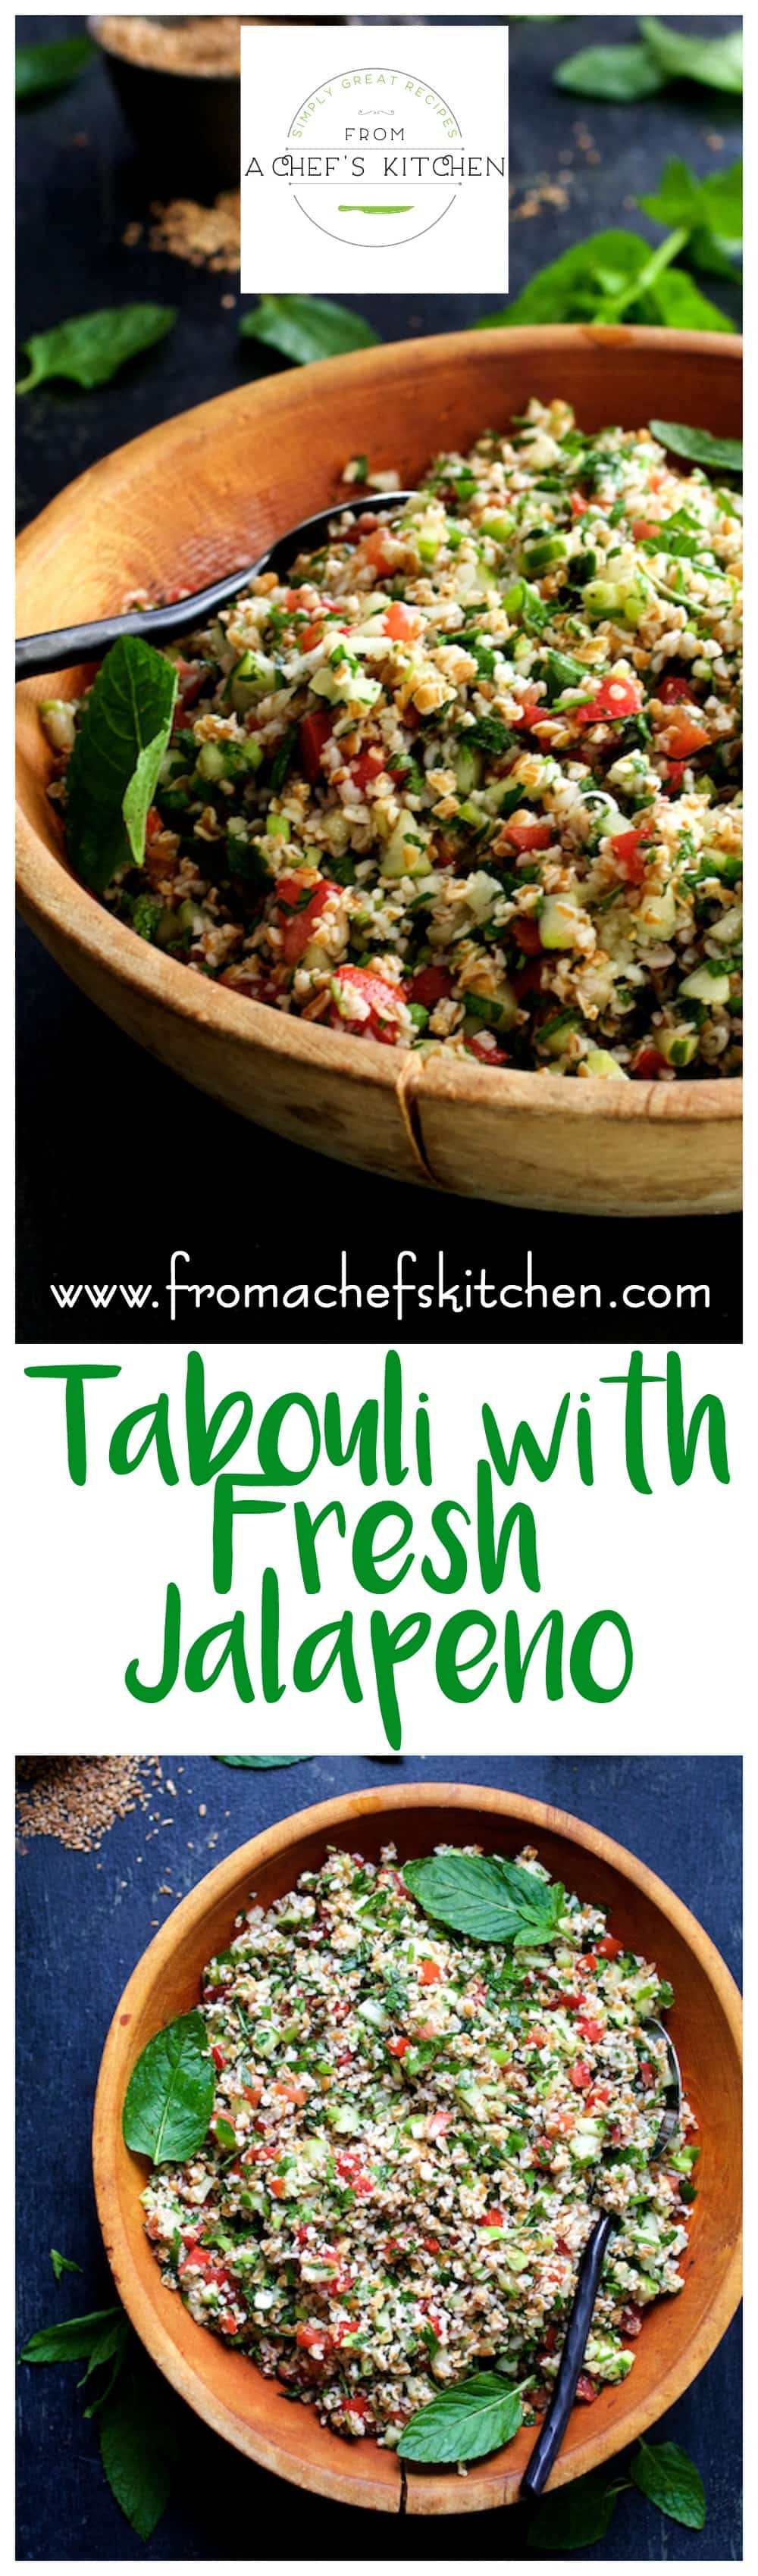 With loads of fresh herbs, crunchy veggies, jalapeno and a lively lemon dressing, this tabouli (tabbouleh) is perfect all summer long.